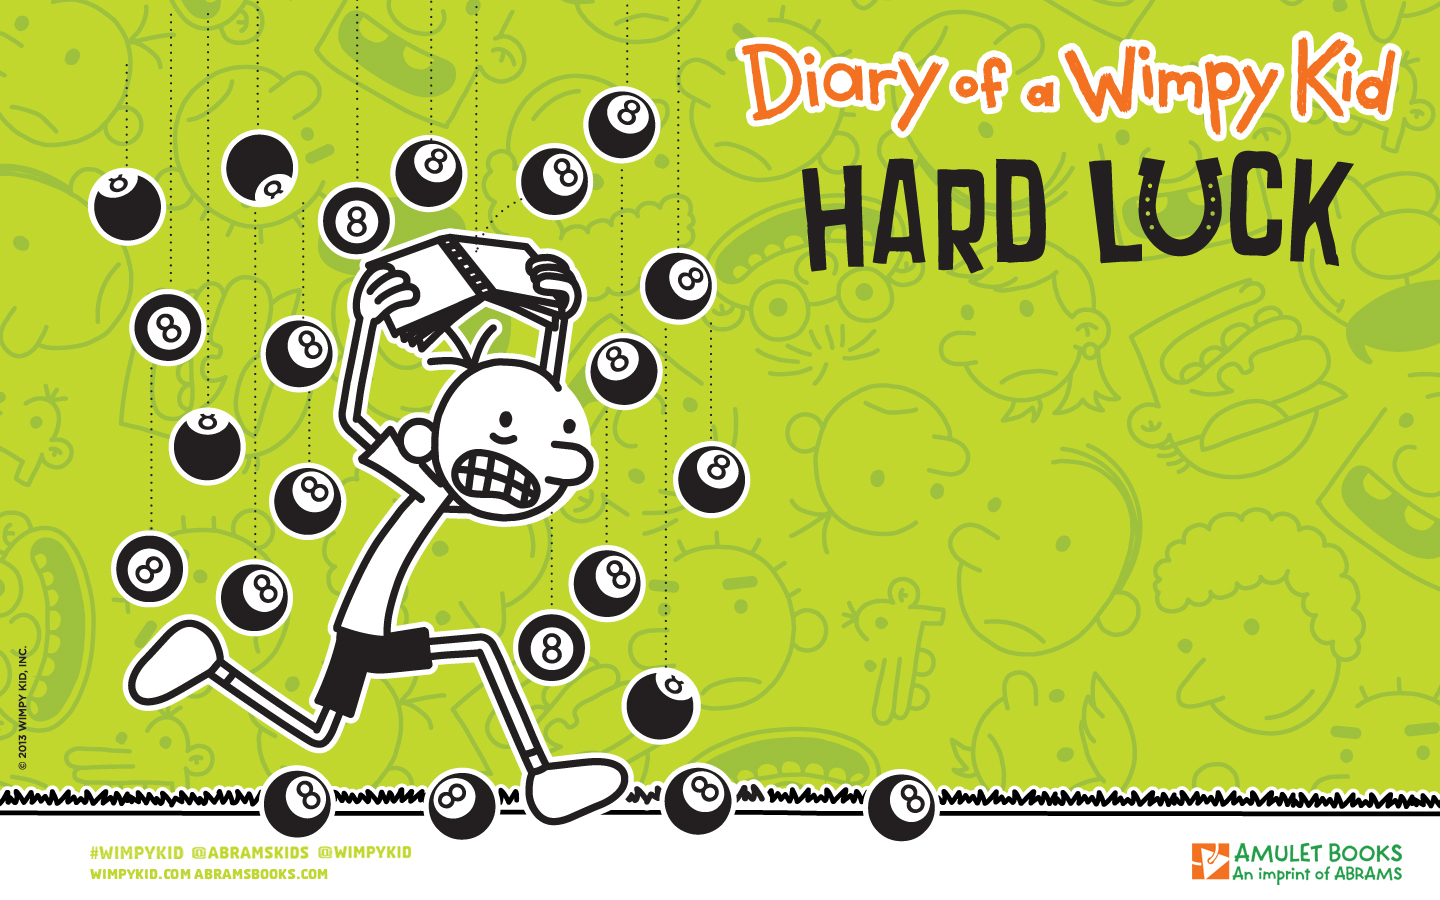 Image wimpy wallpaper 1440x904g diary of a wimpy kid wiki wimpy wallpaper 1440x904g solutioingenieria Image collections